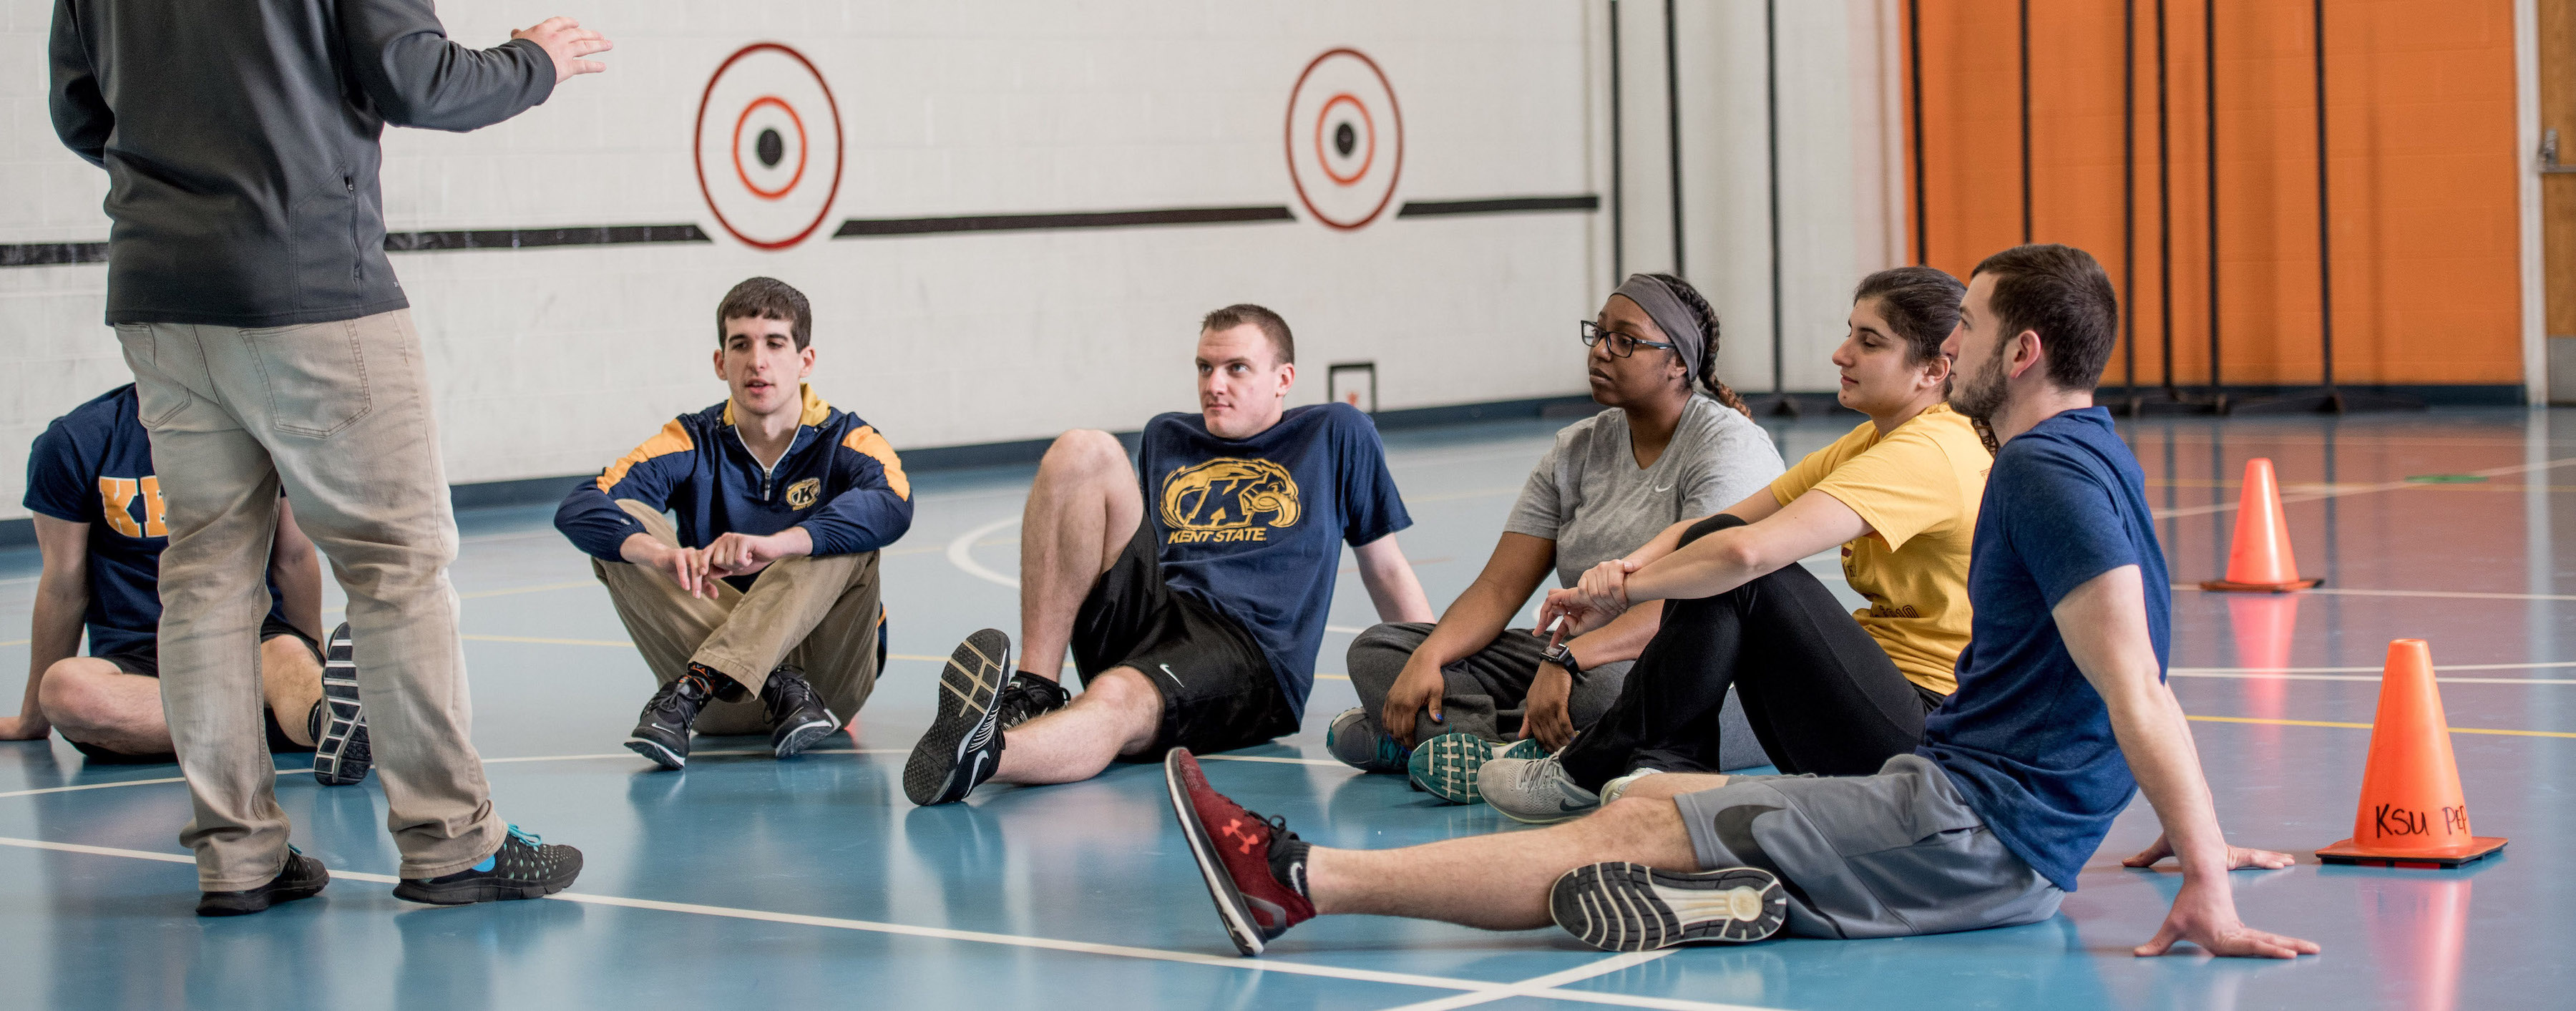 Physical Education students in class